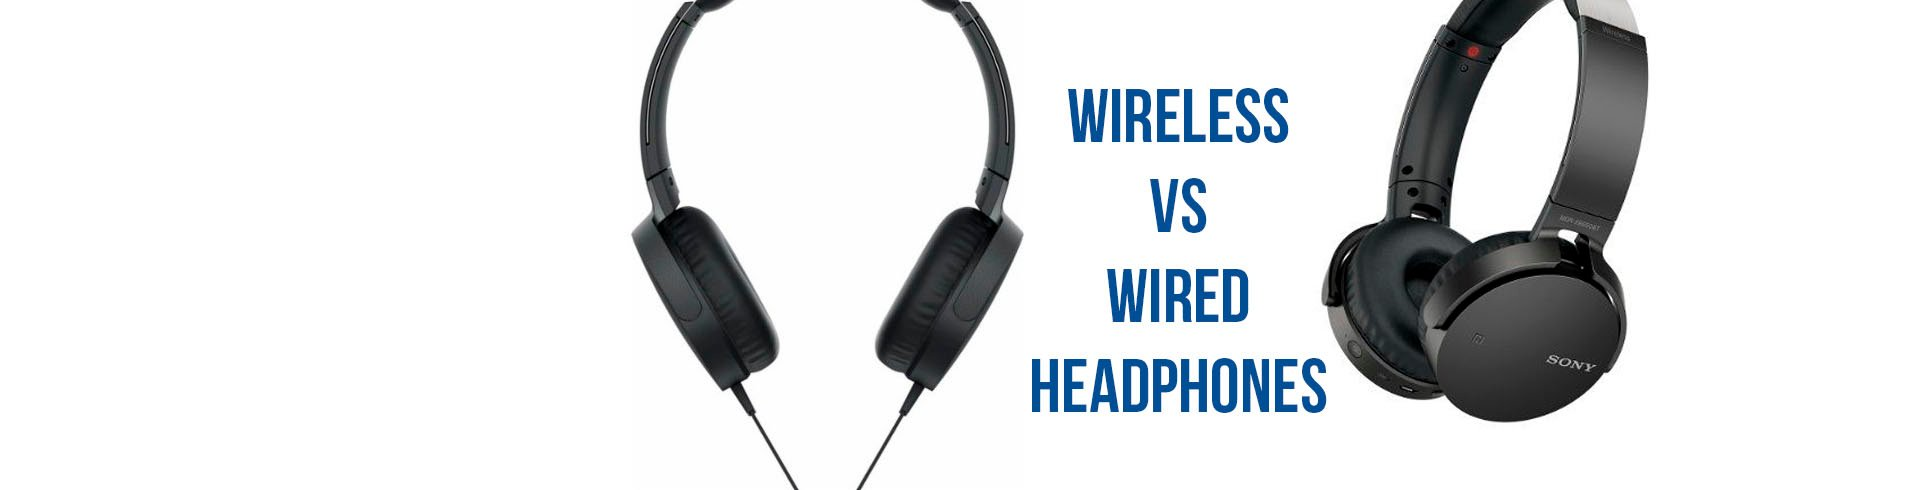 Wired vs. Wireless Headphones | RC Willey Blog